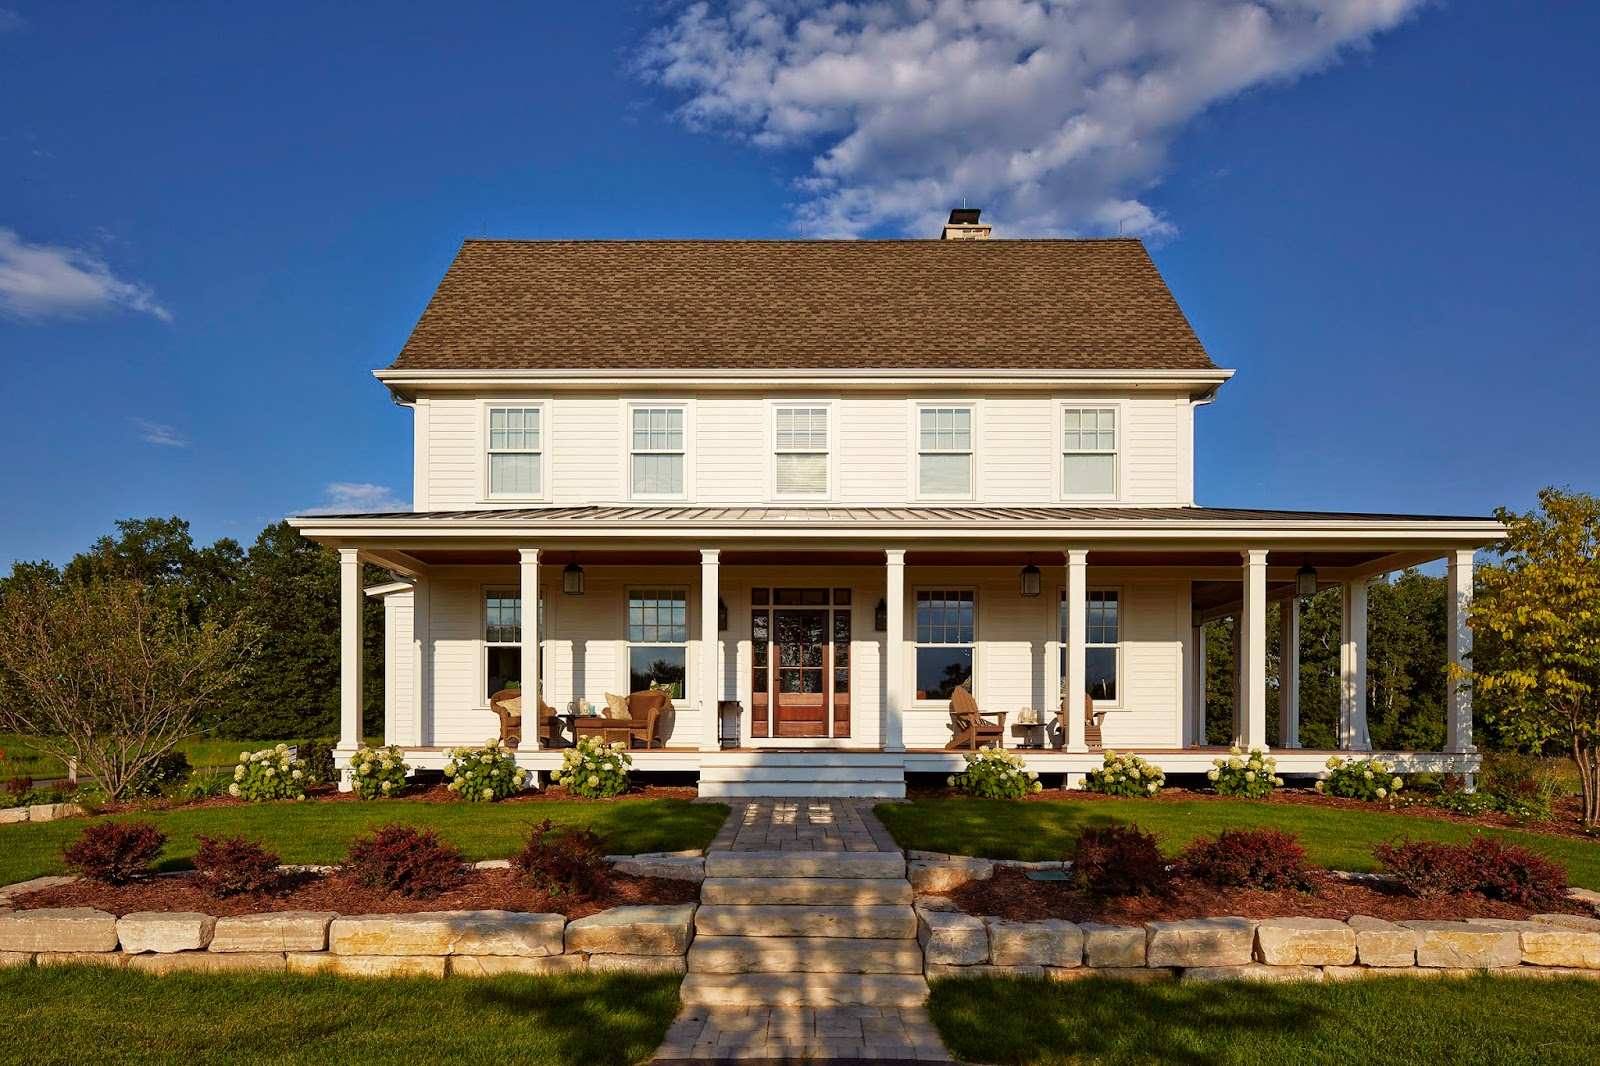 Simply elegant home designs blog new greek revival farmhouse photos for Elegant home designs